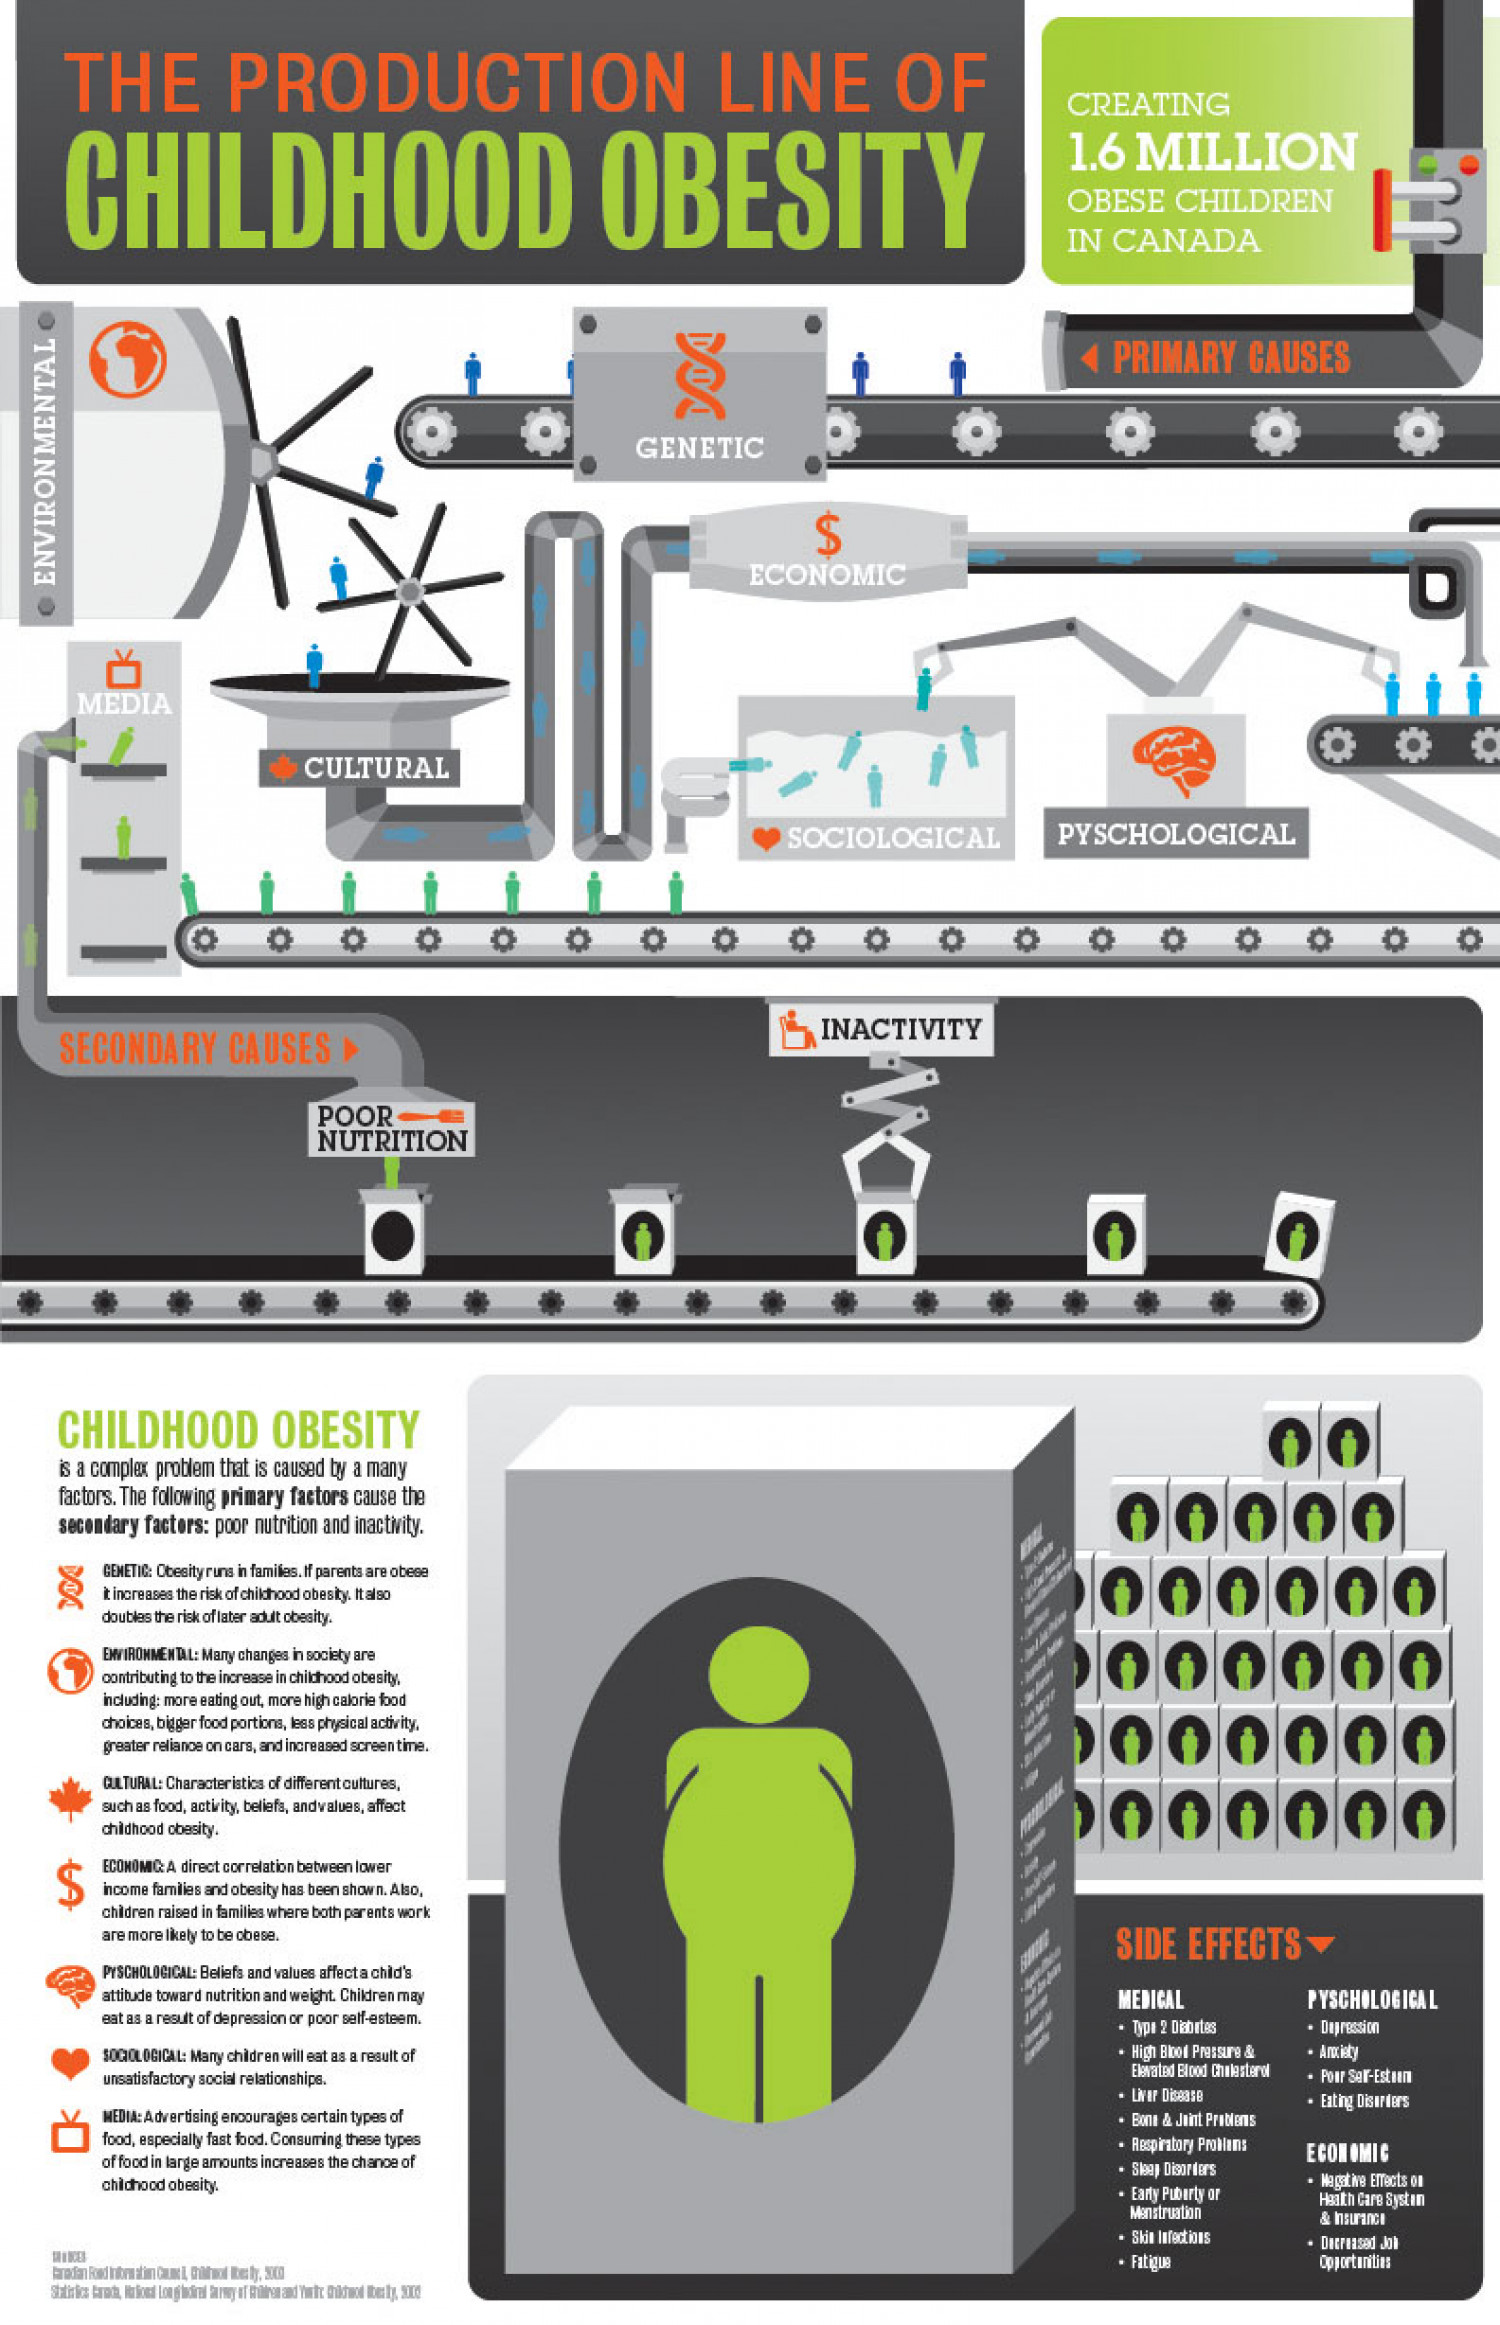 The Production Line of Childhood Obesity Infographic